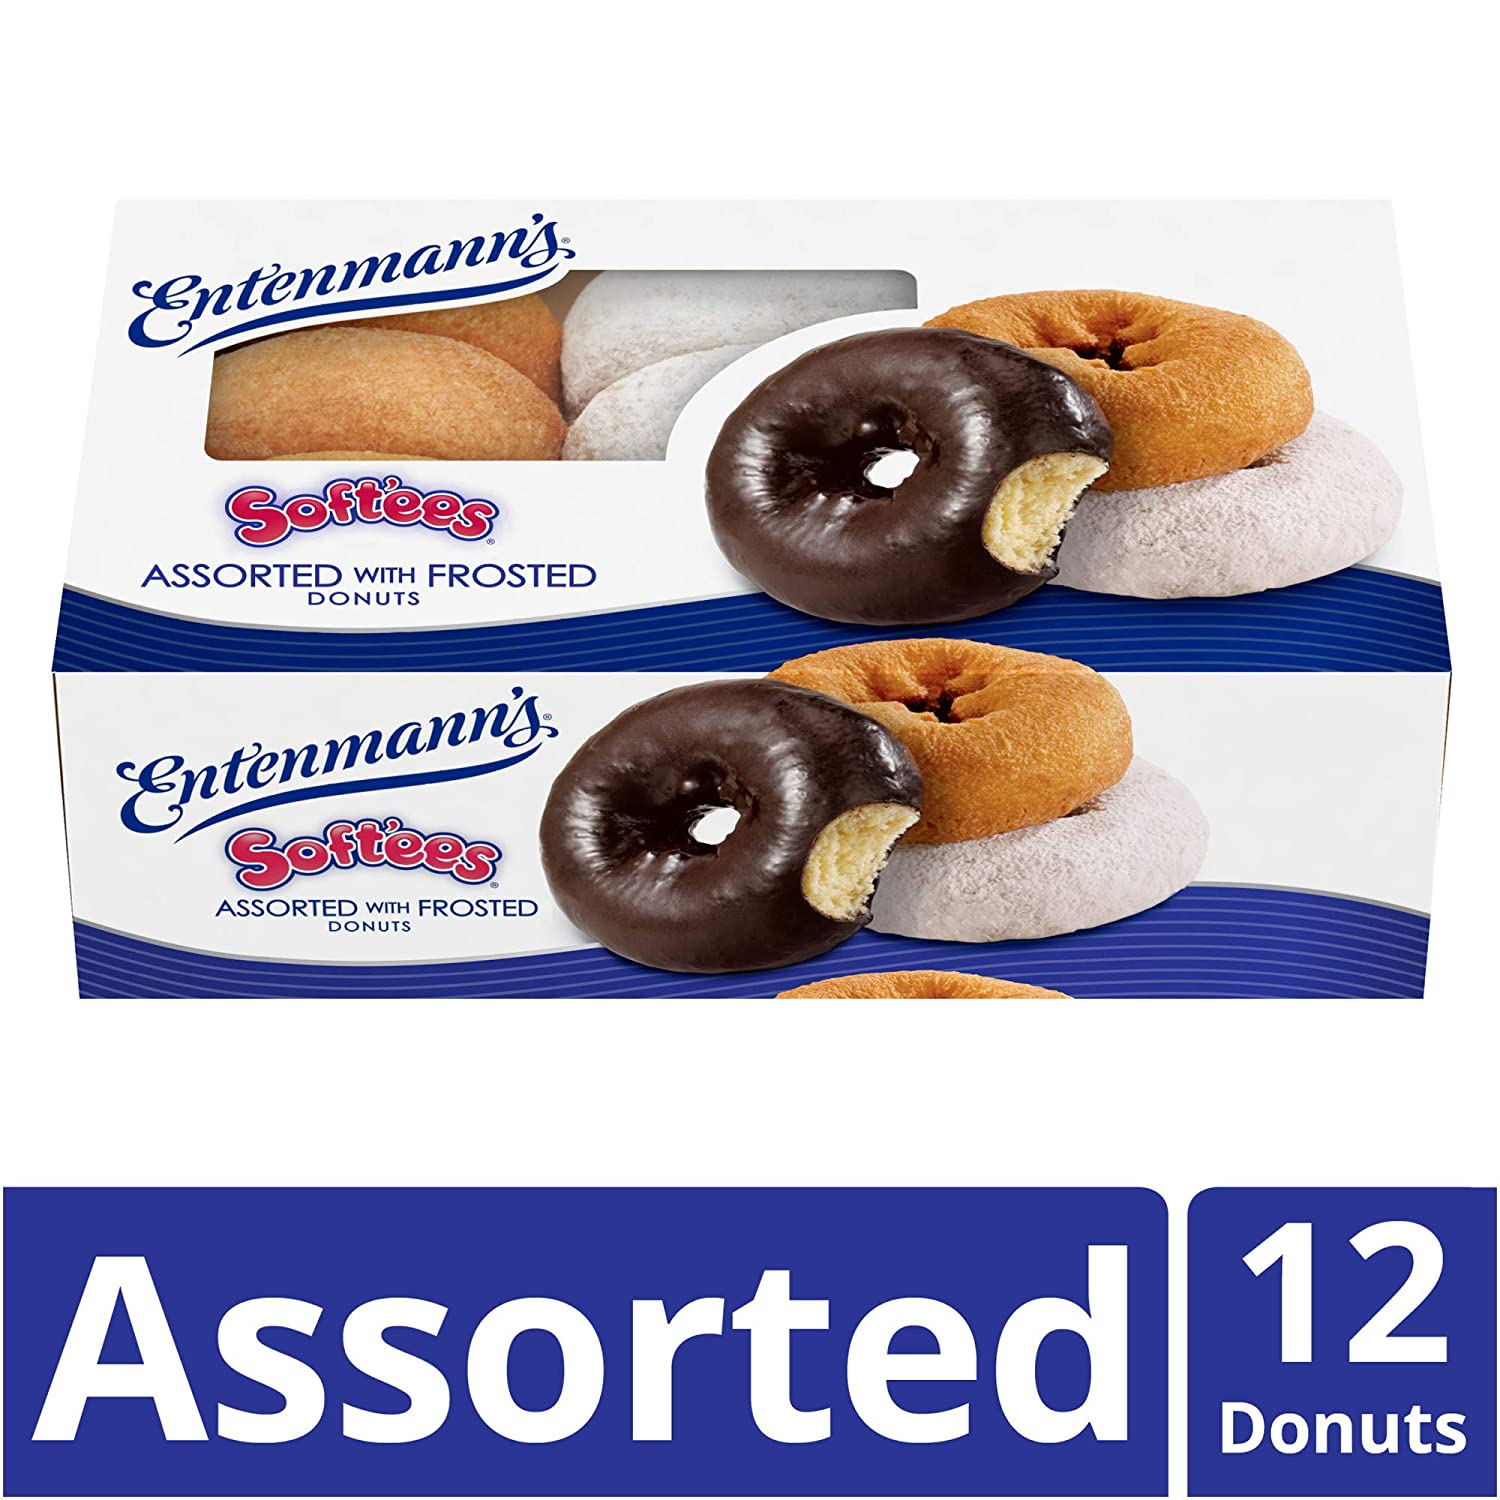 De Entenmann softees Family Pack 12 Assorted Donuts 22 oz ...